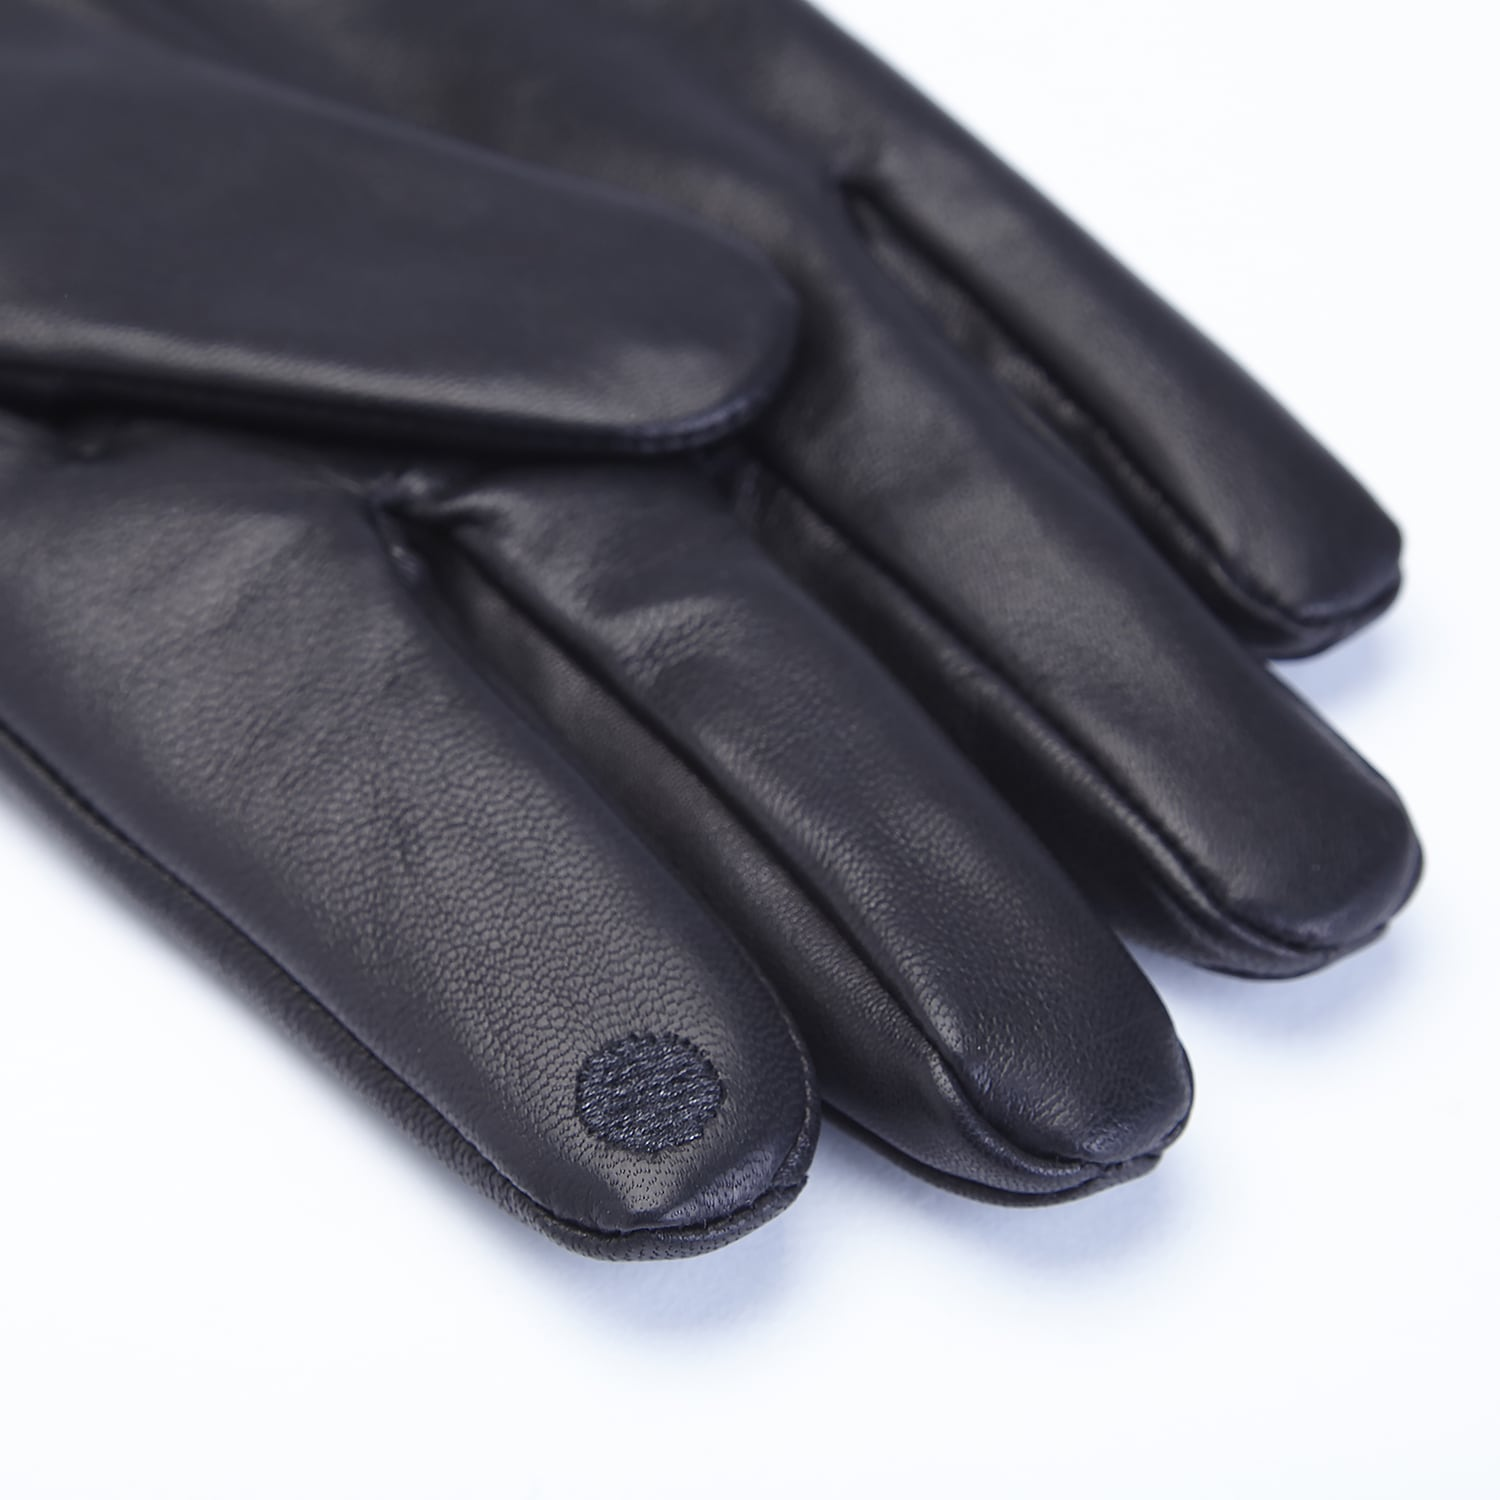 1d6cd3722 Shop Royce Leather Premium Lambskin Leather Cellphone Tablet Touchscreen  Gloves, Men's Large, Black - On Sale - Free Shipping Today - Overstock -  10568617